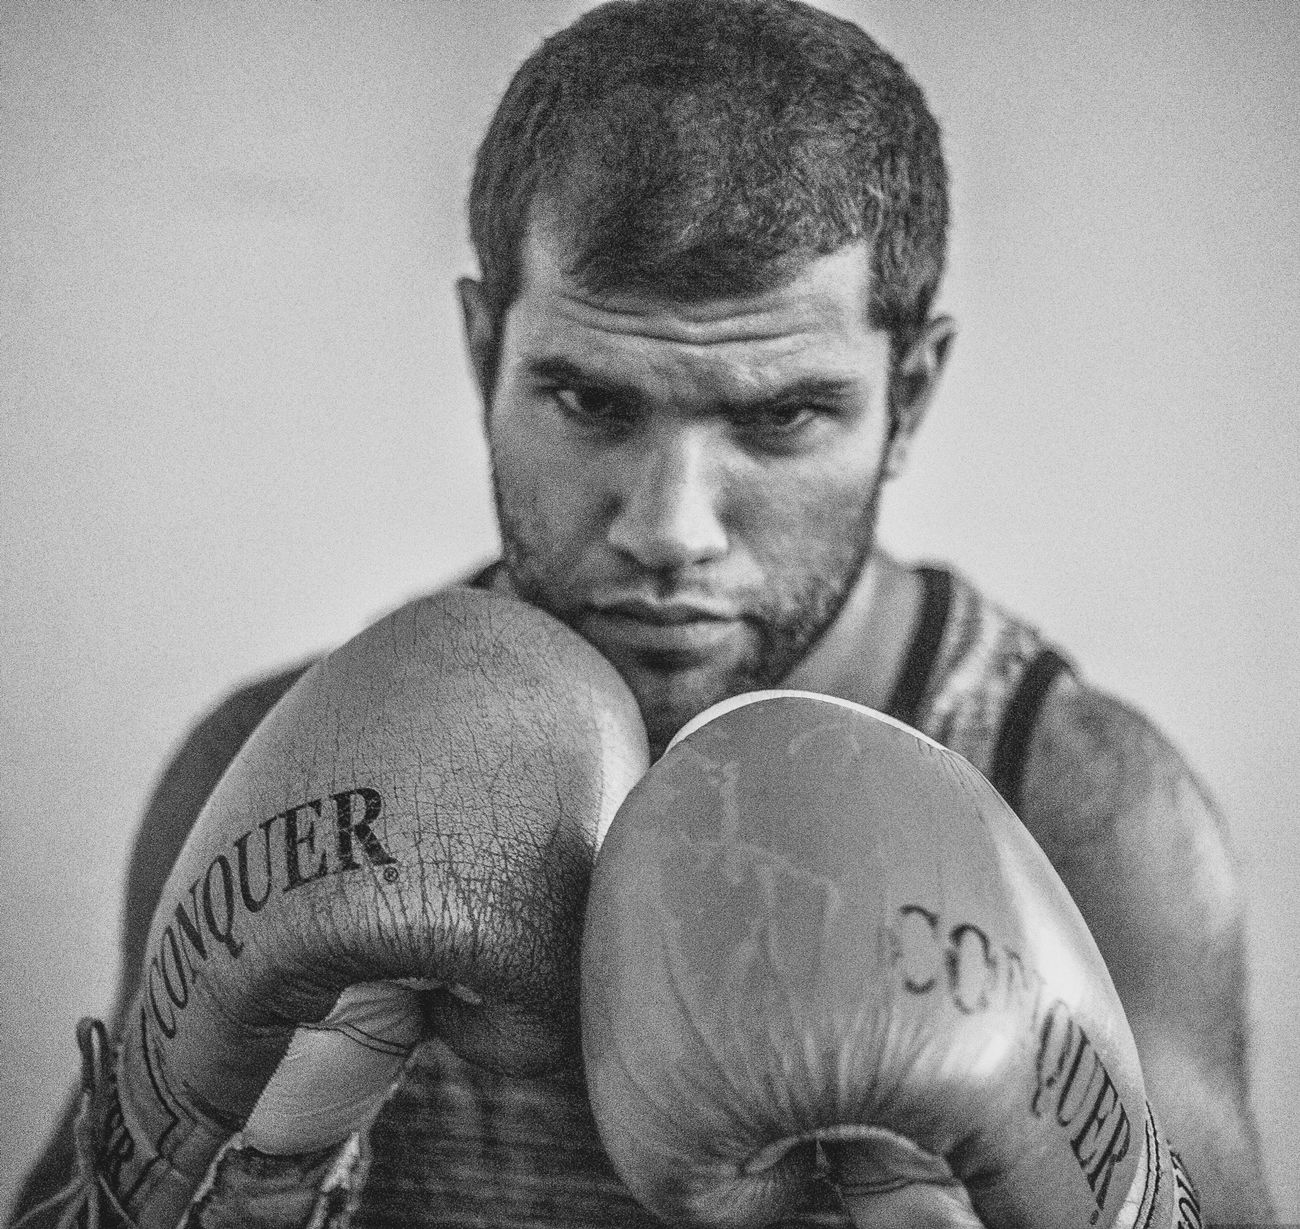 Boxing - Sport Only Men One Man Only Boxing Glove Men Indoors  One Person Shirtless P Sportsman Adults Only Exercising Studio Shot Strength Human Body Part Young Adult Headshot One Young Man Only Young Men The Portraitist - 2017 EyeEm Awards